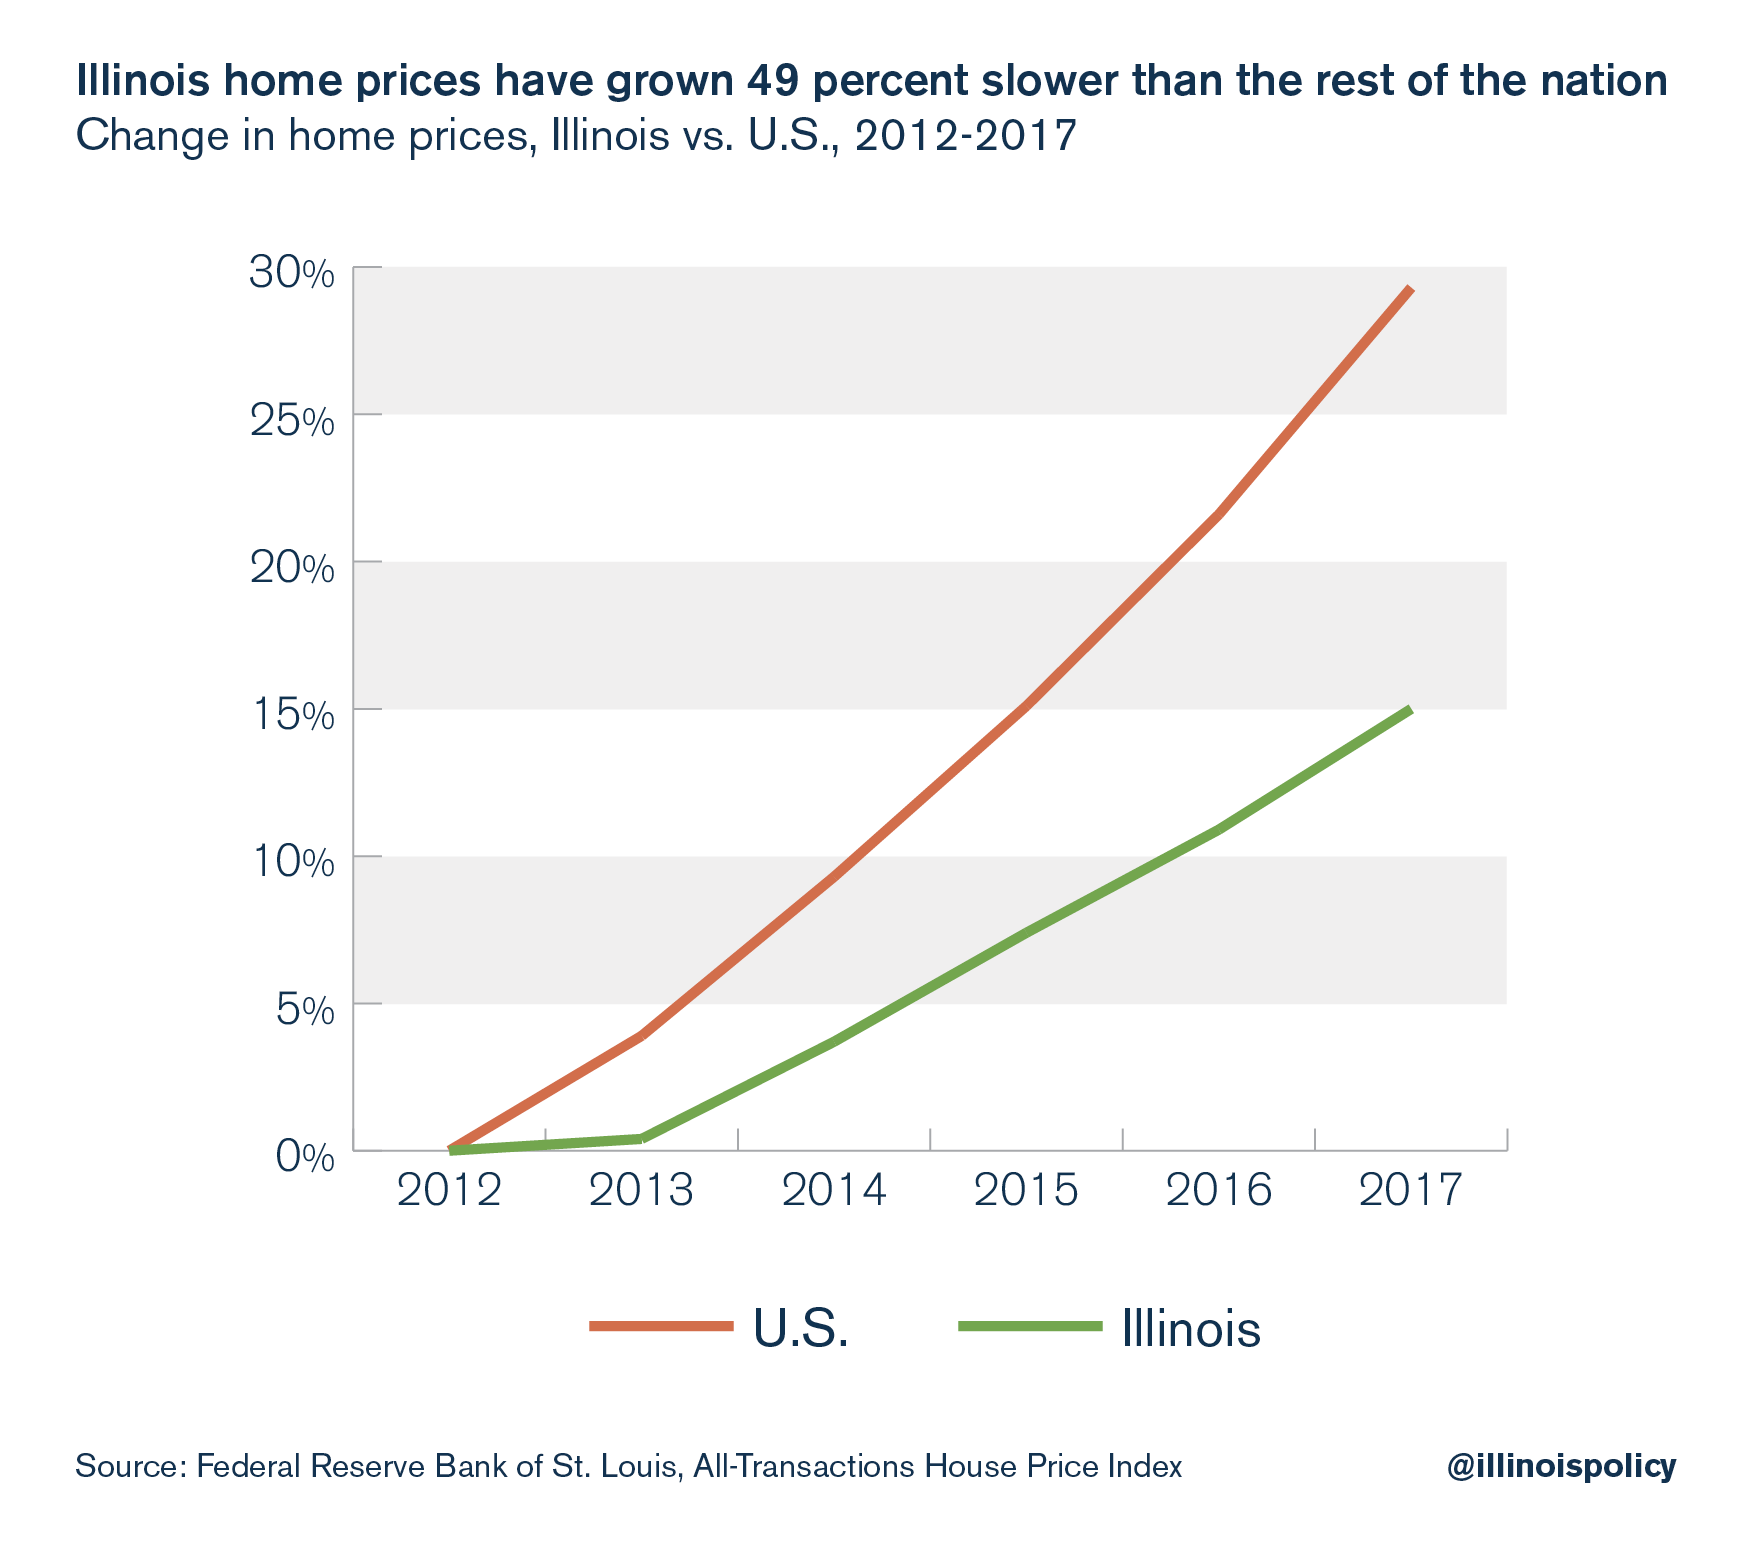 Illinois home prices have grown 49 percent slower than the rest of the nation